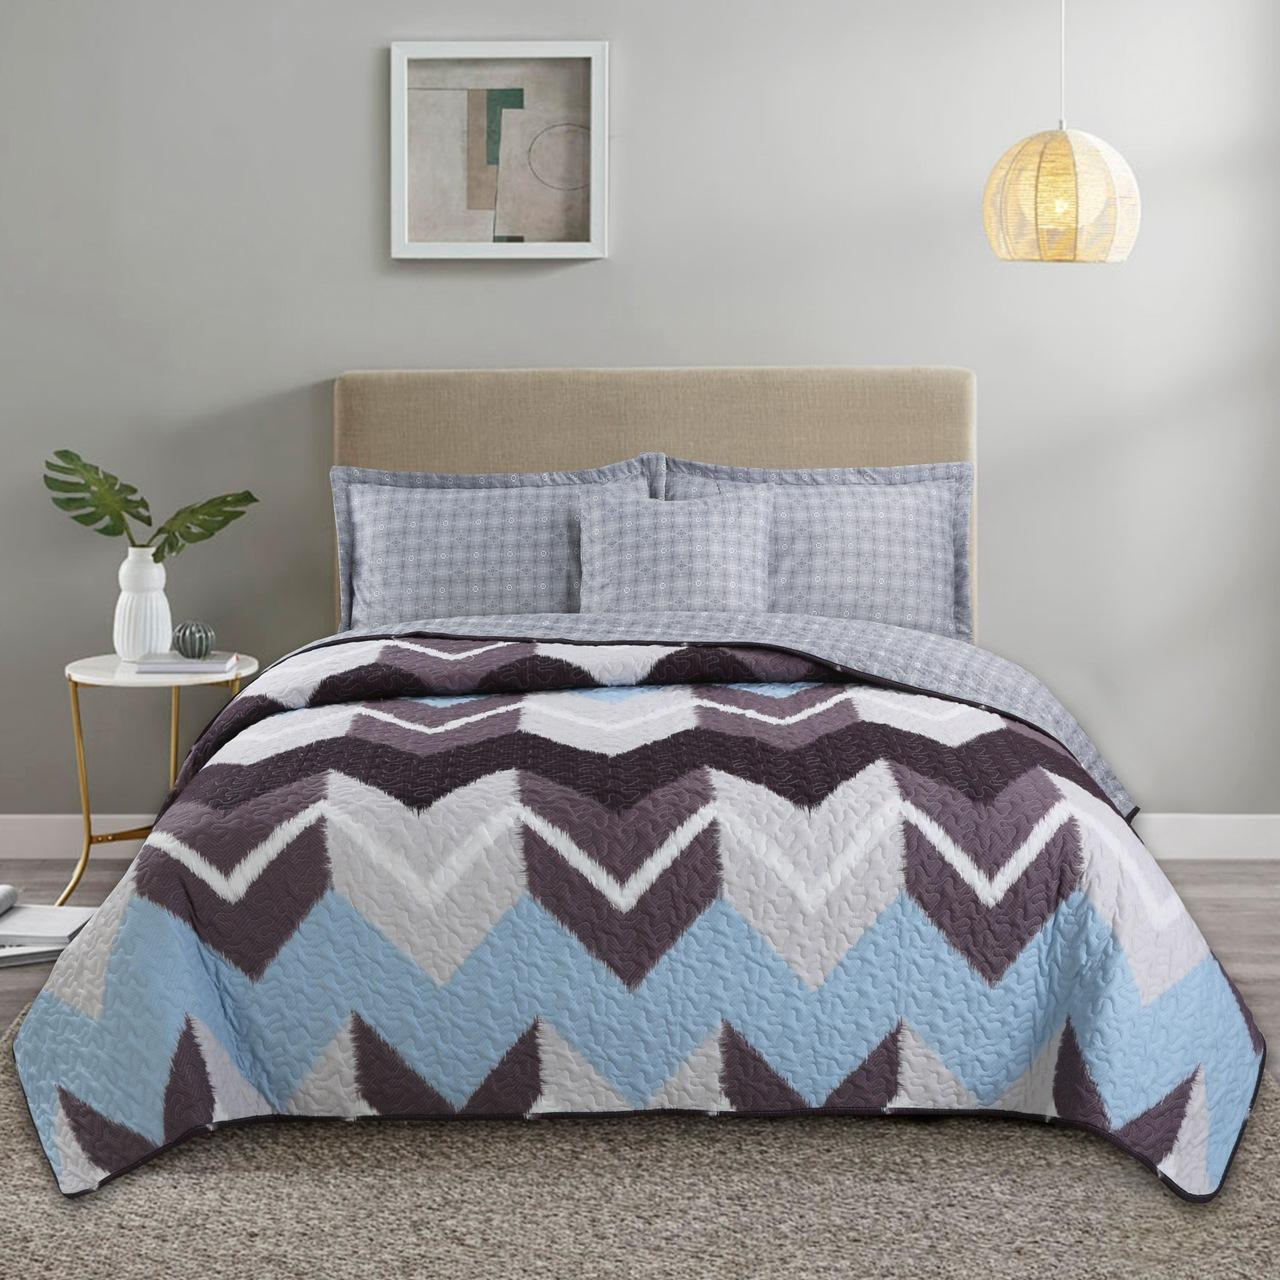 American style Quilt Set 3pcs air conditioner Quilts Cotton Quilted Bedspread 3